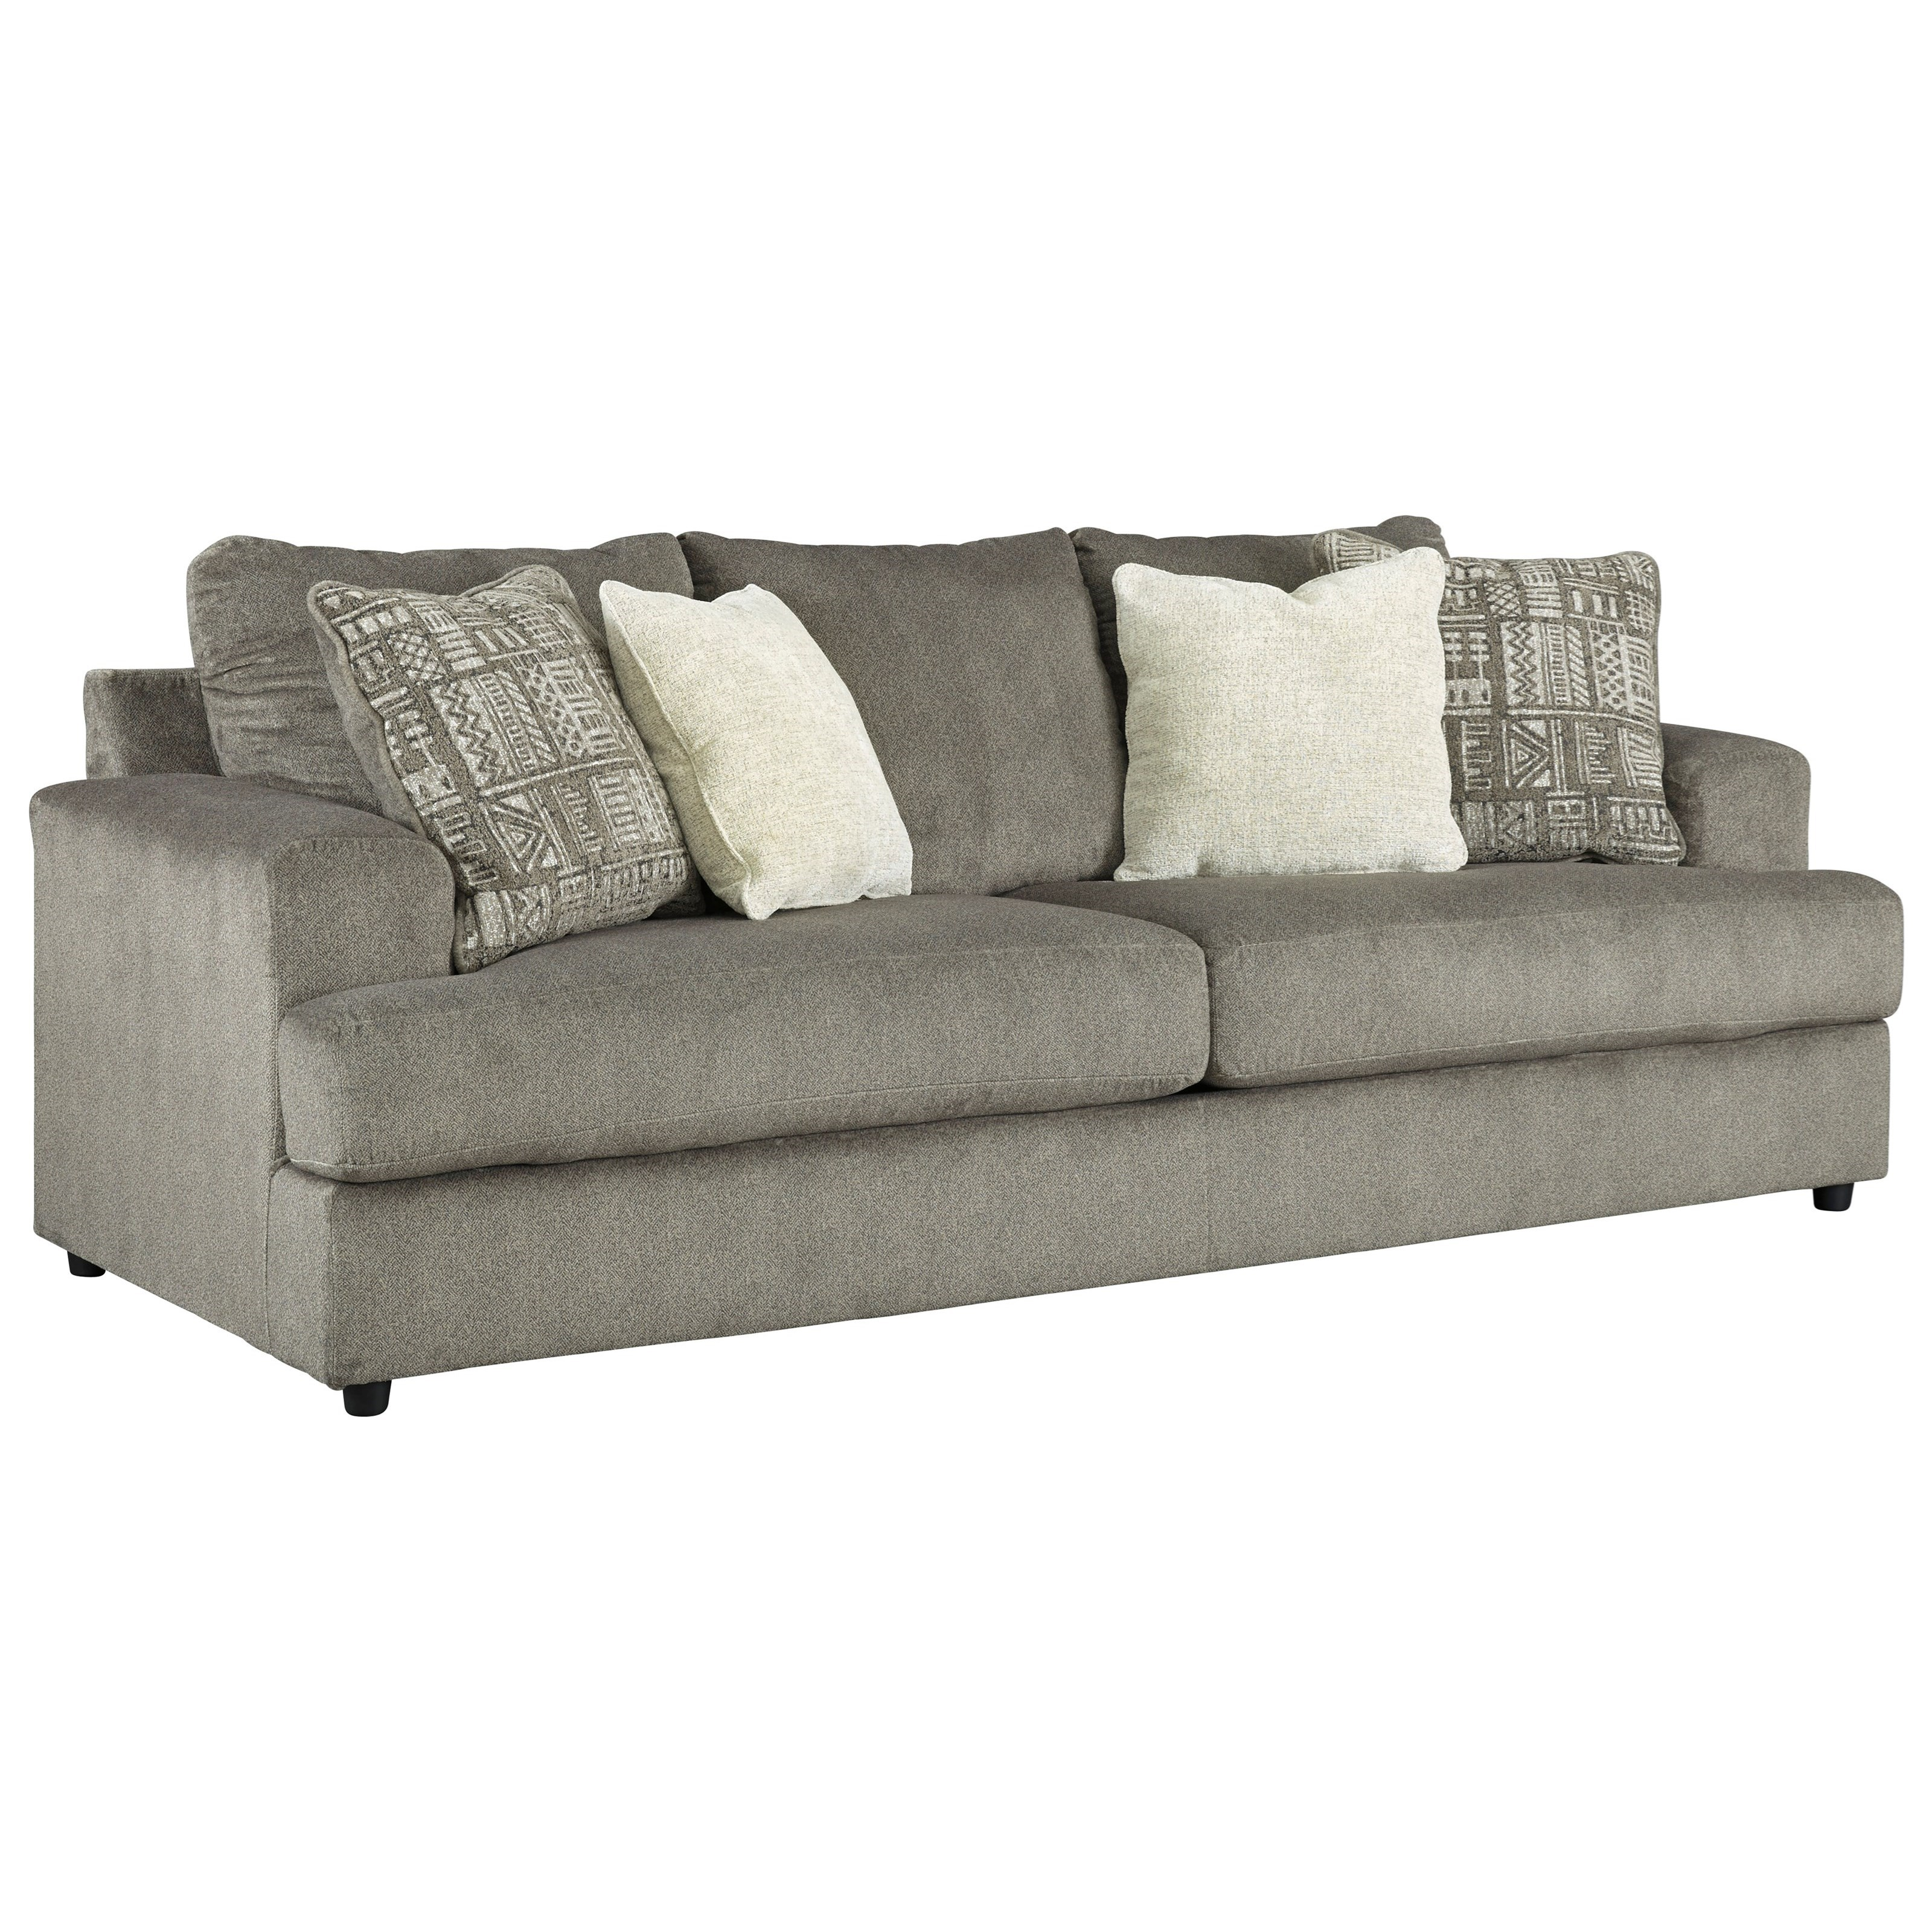 Soletren Queen Sofa Sleeper by Signature Design by Ashley at Beck's Furniture